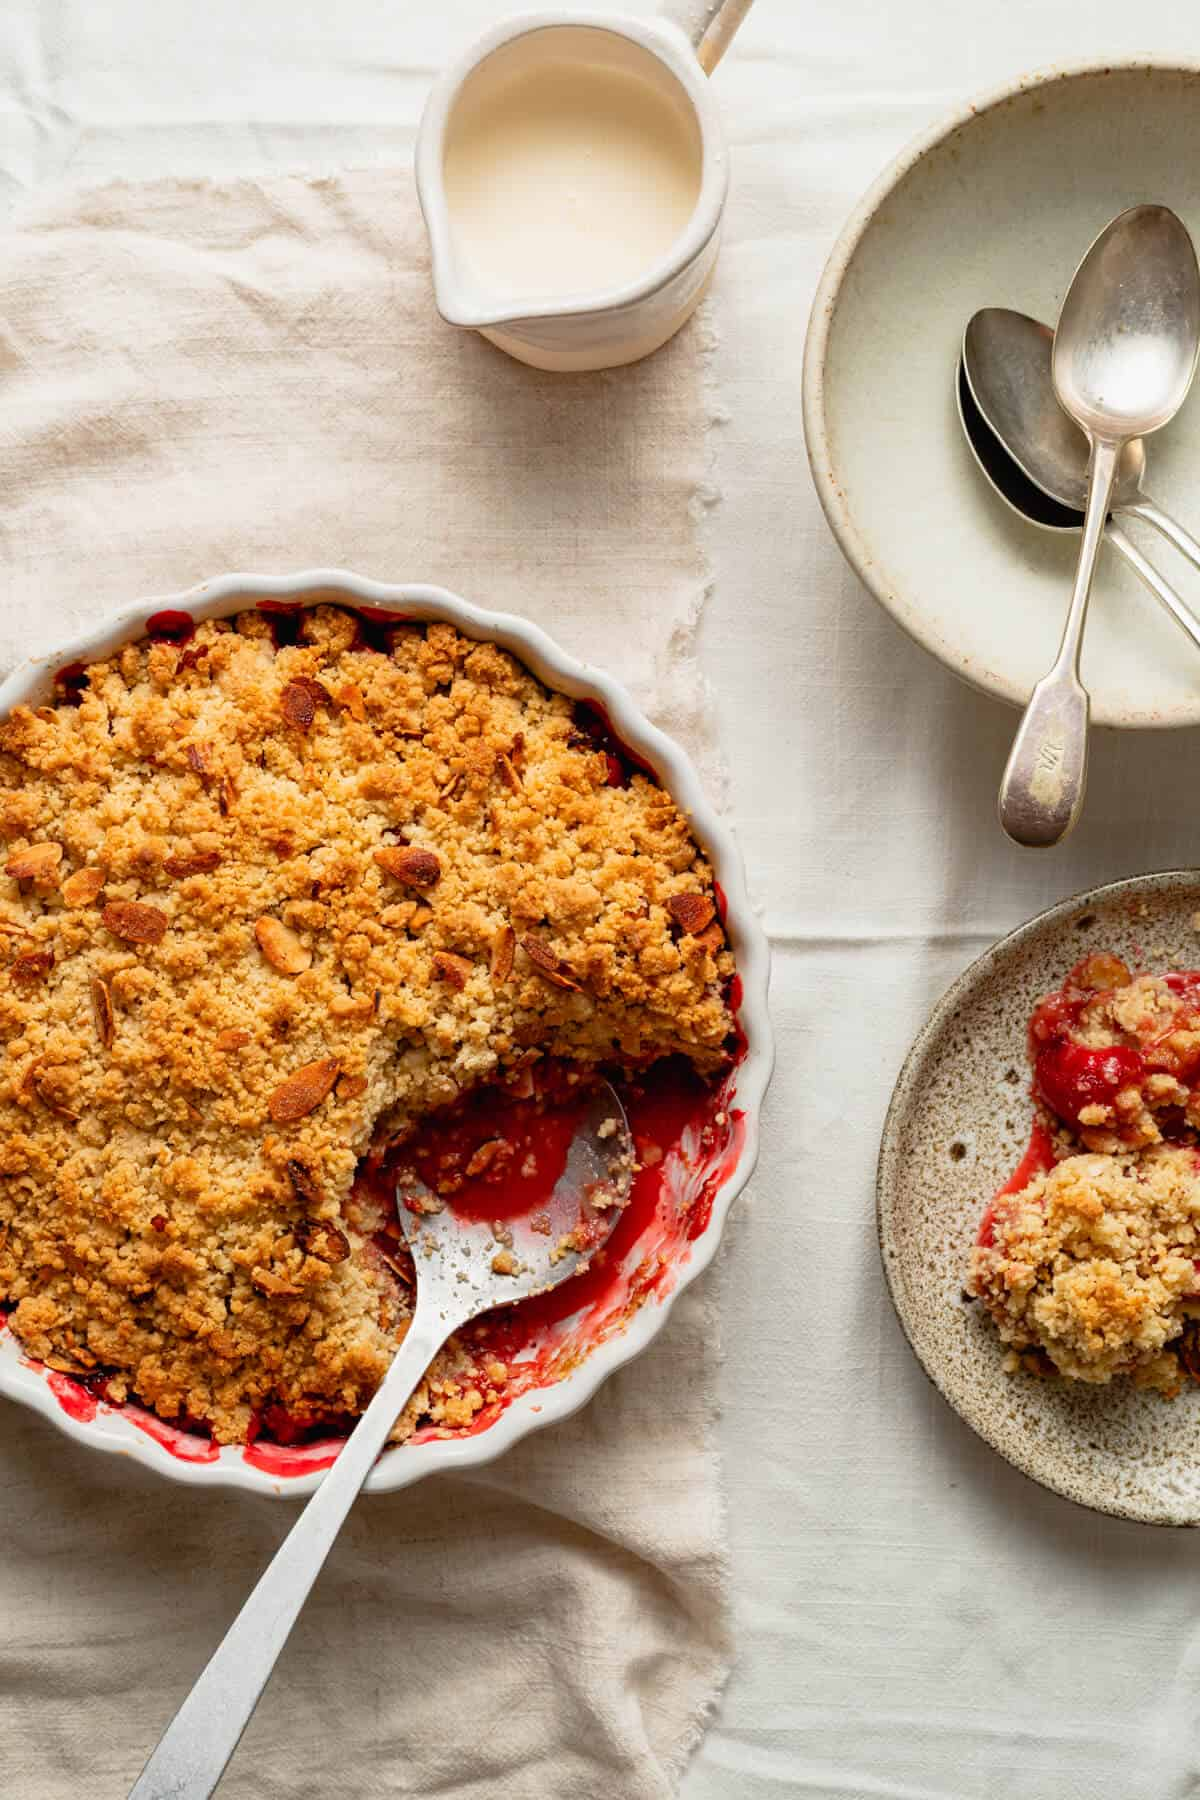 strawberry crumble baked in a flan dish and being served onto a plate with a spoon